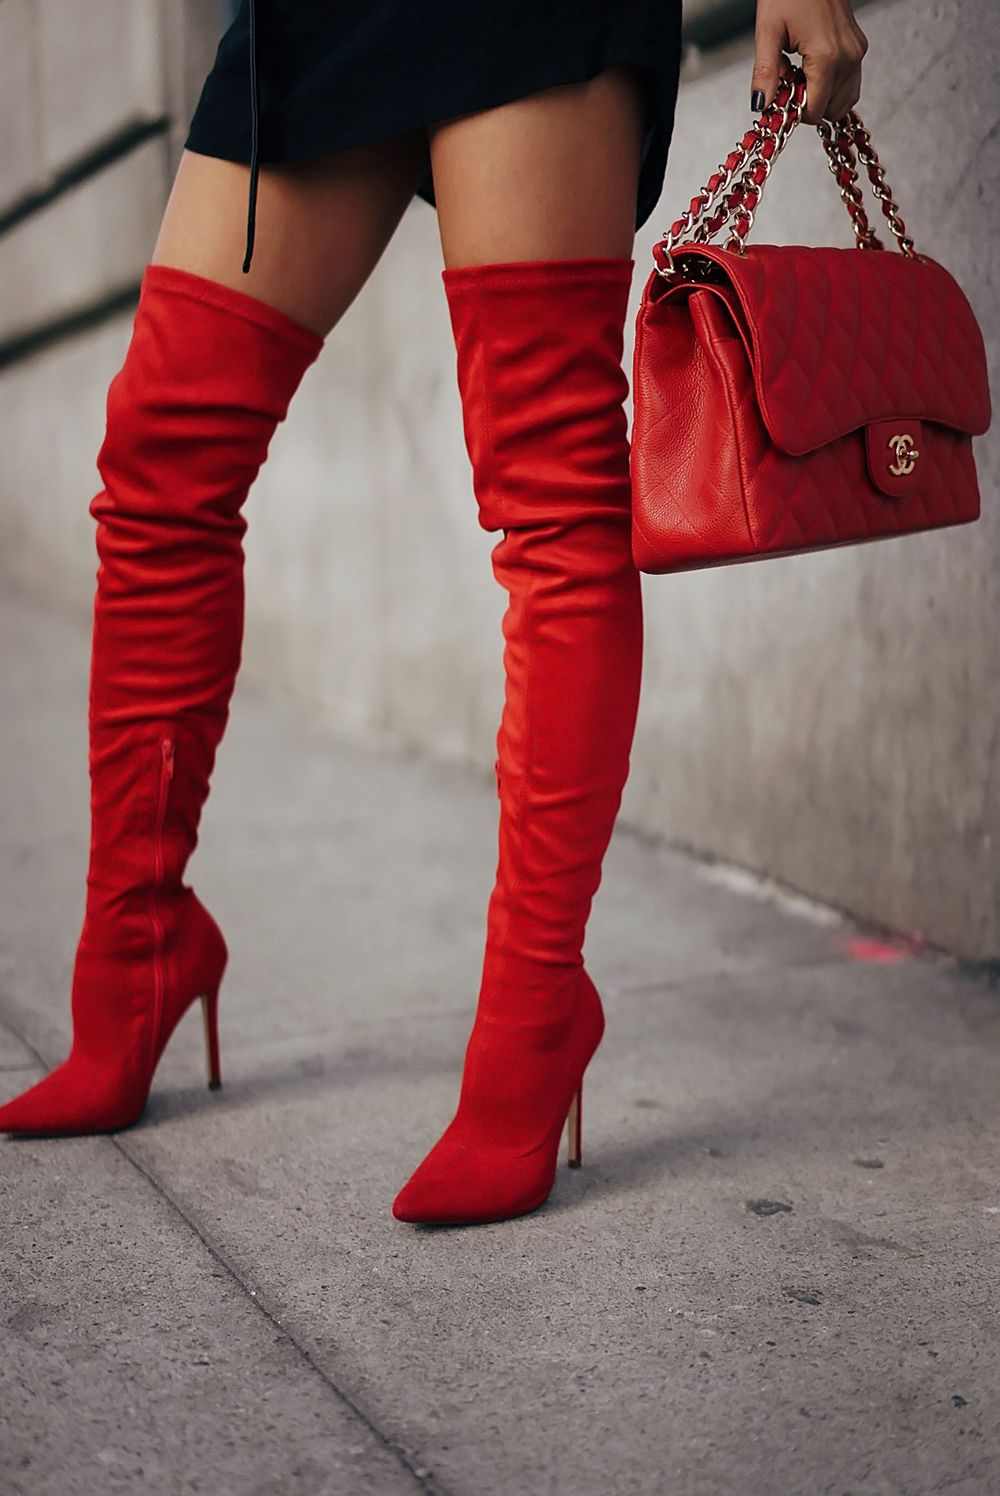 HOW TO WEAR RED THIGH HIGH BOOTS THIS